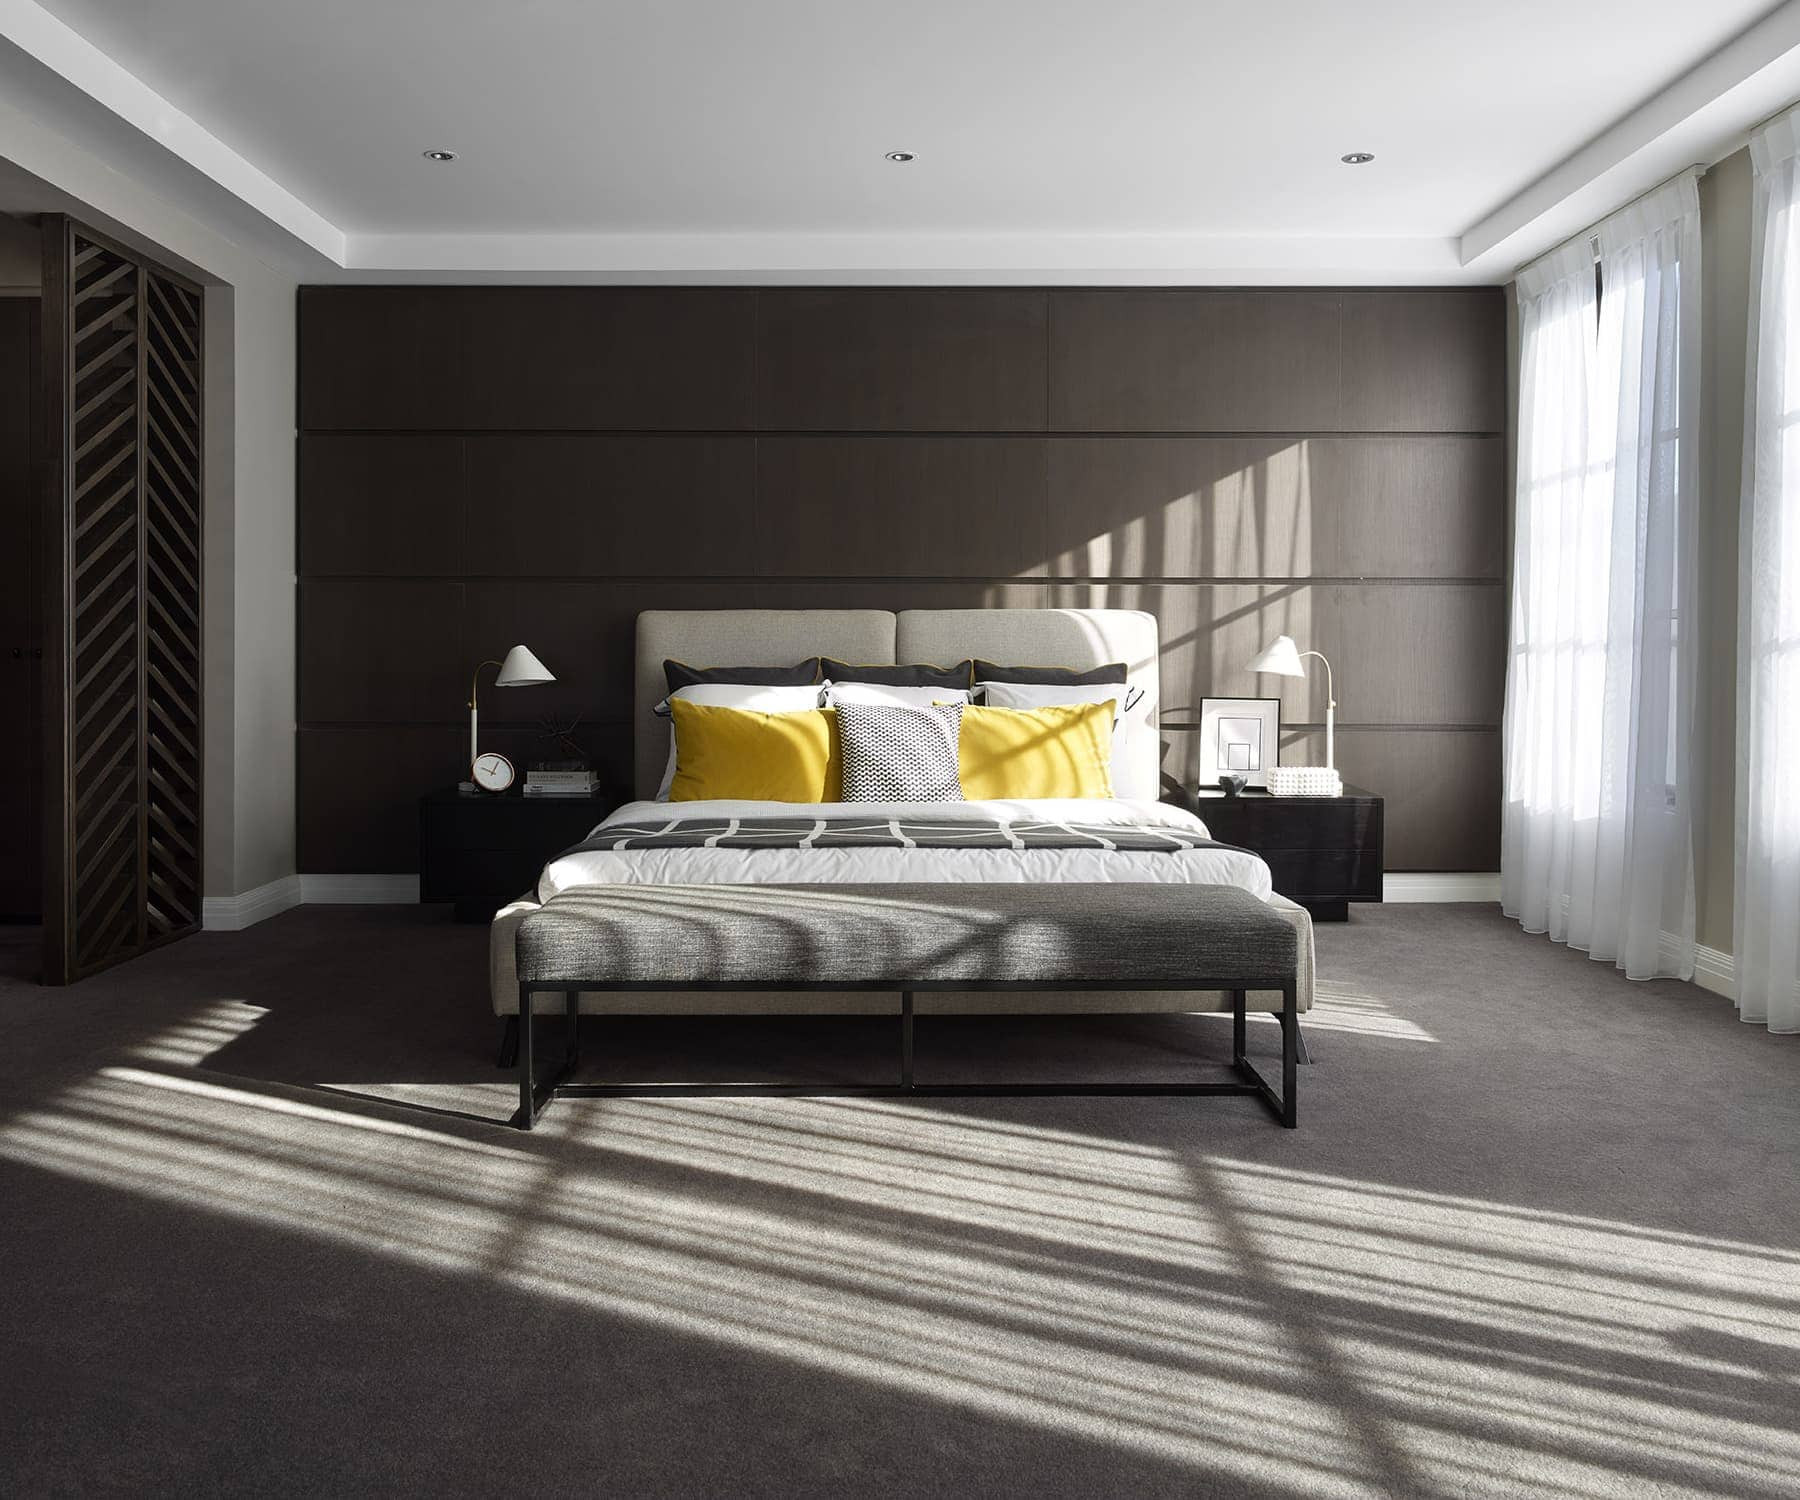 Alluring Bedroom Designs Dark Wall Dark Bedroom Wall Ideas Let S Say No to All White Rooms